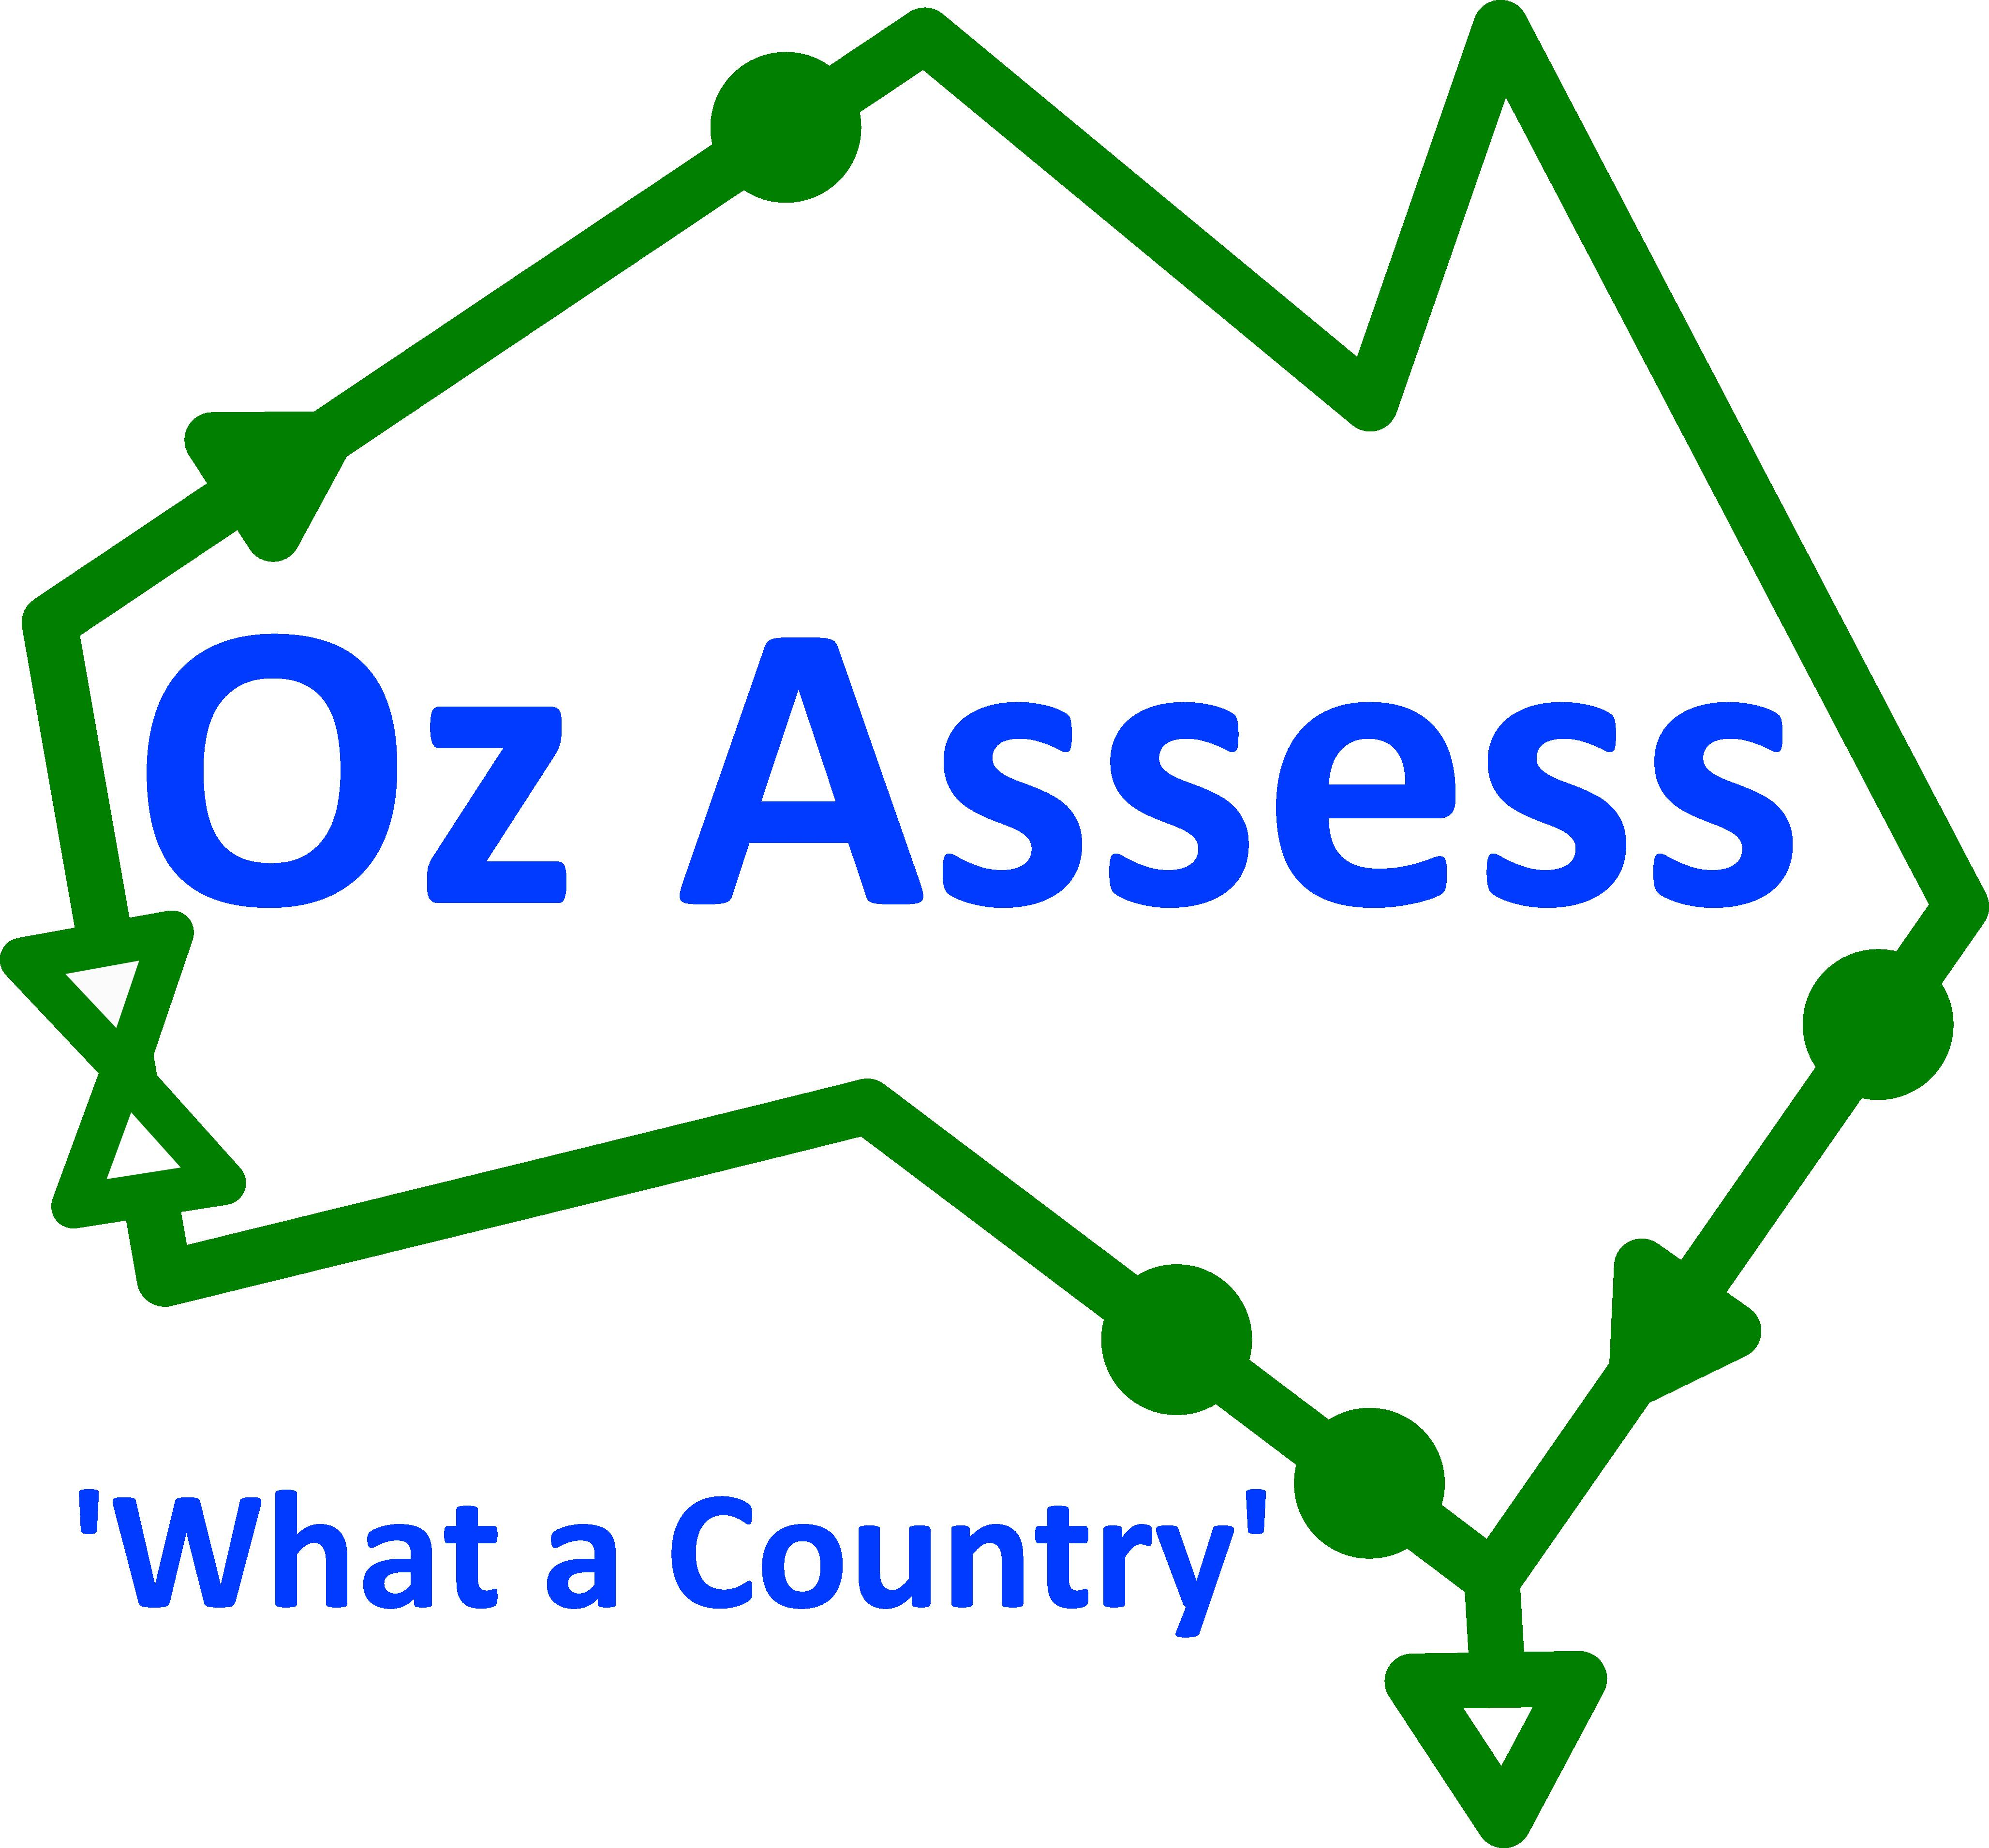 Oz Assess Trade Skills Assessments logo